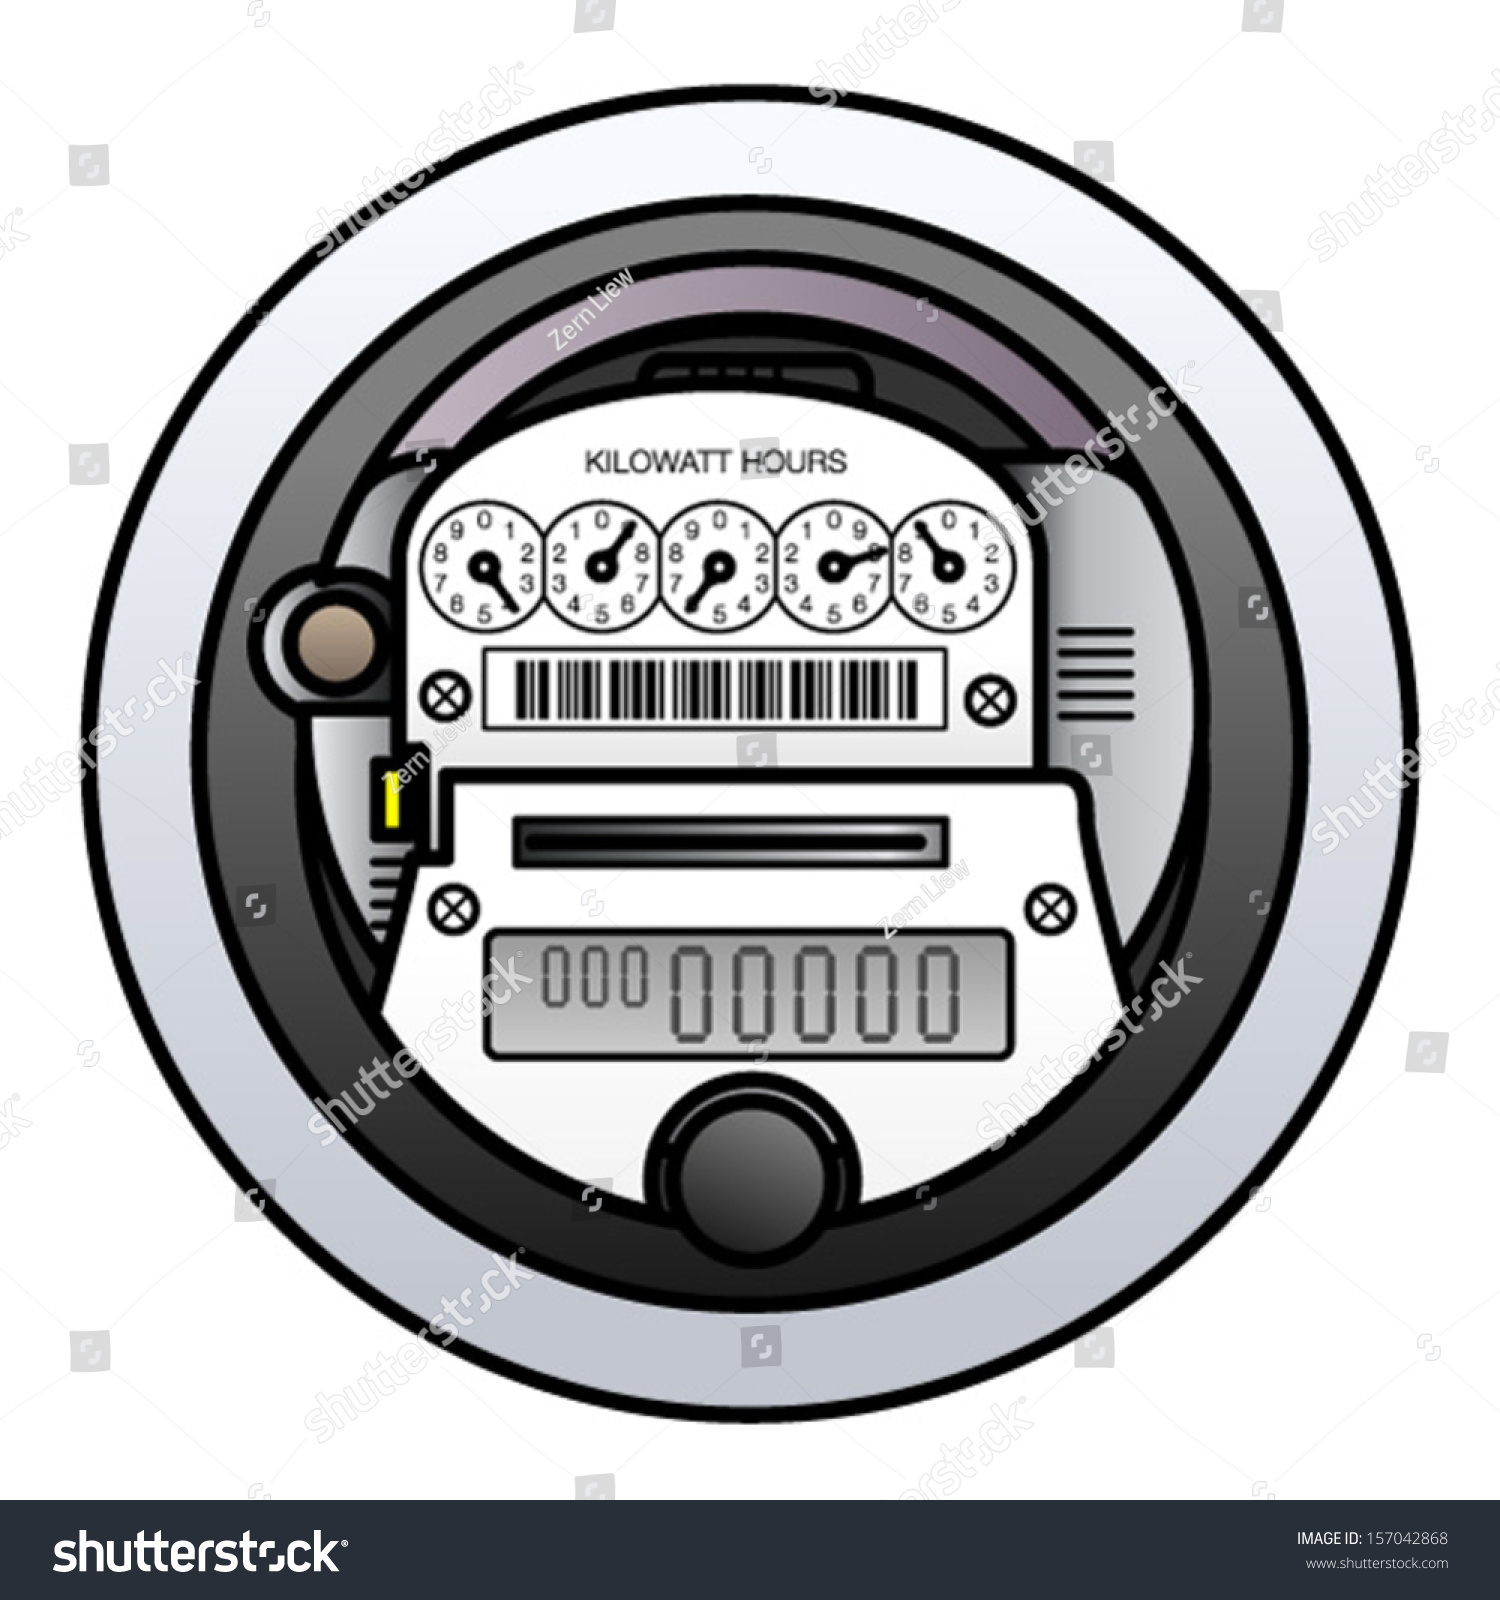 Household Energy Meter : A household electricity power meter stock vector